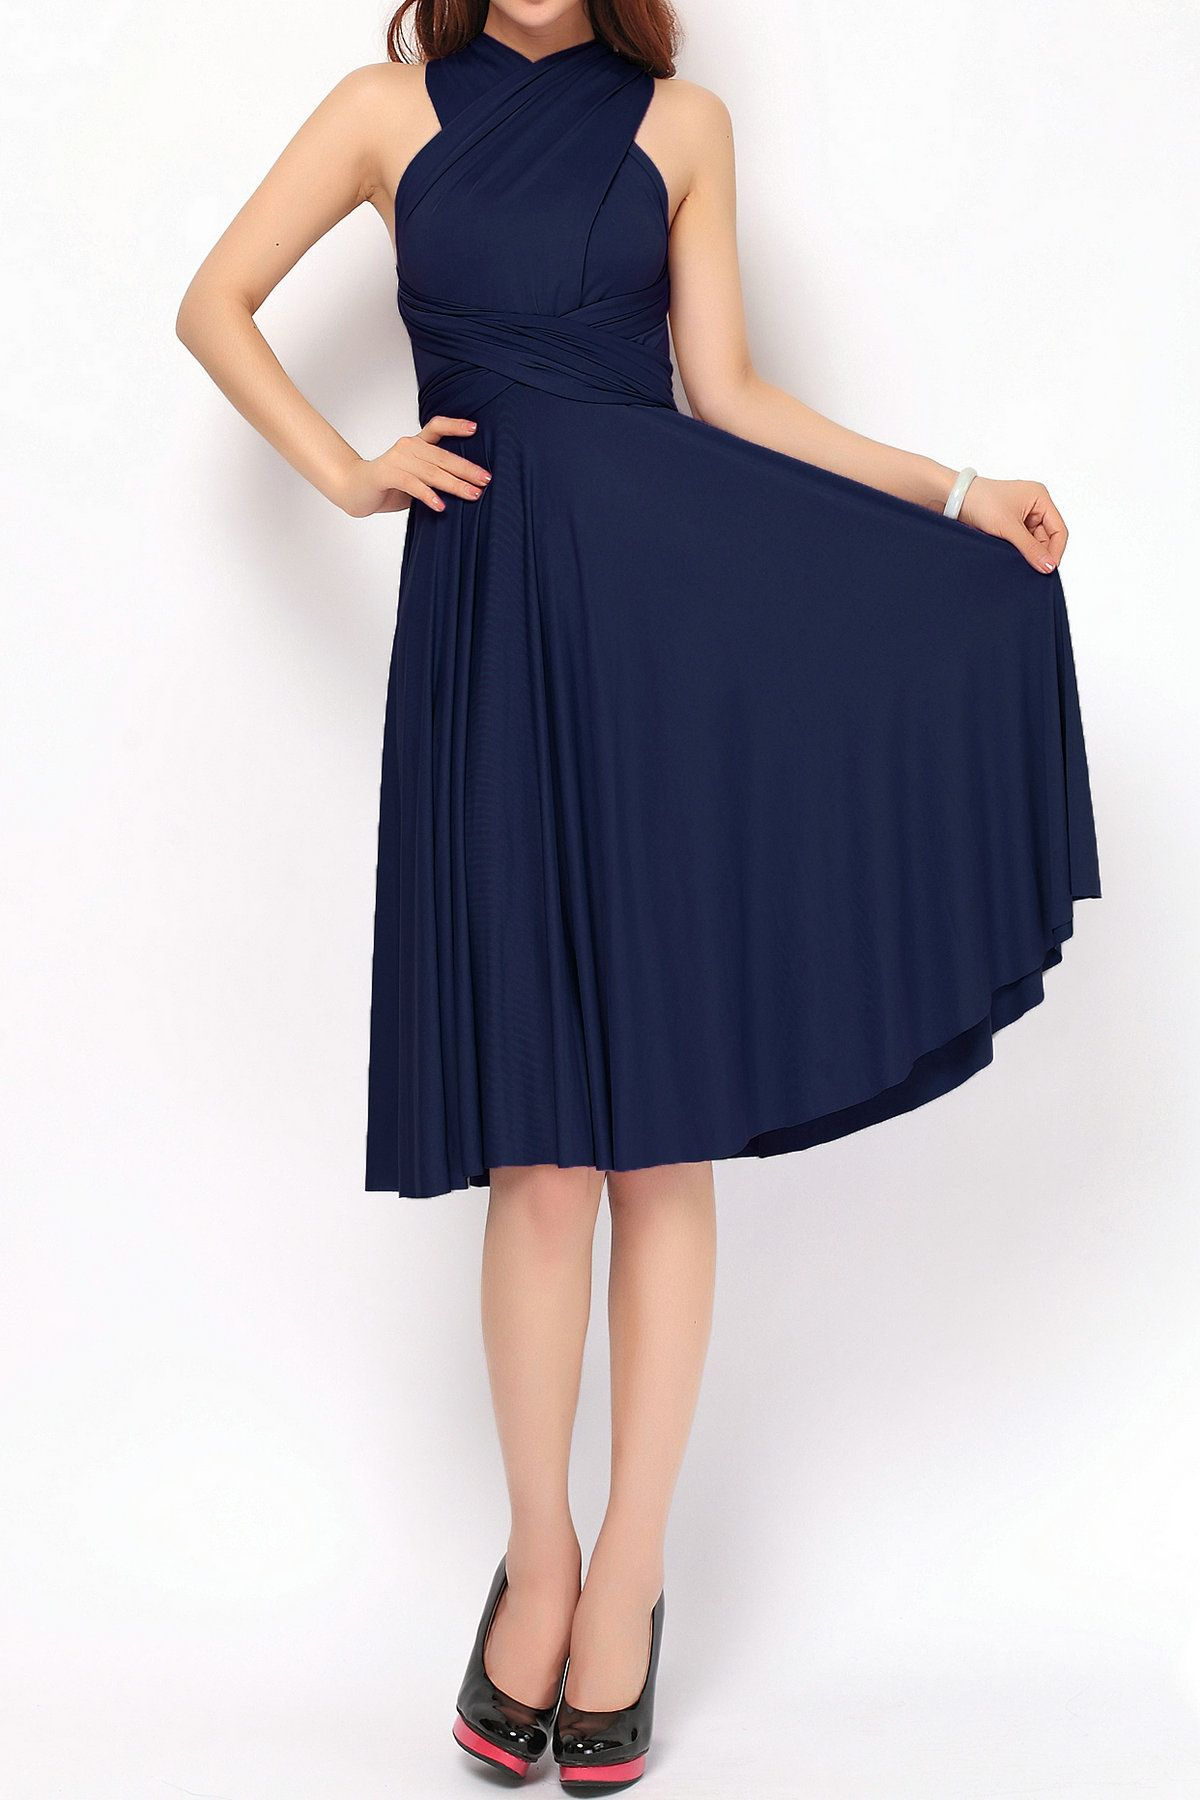 Navy Blue Short Bridesmaid Dresses Convertible Dress These Are